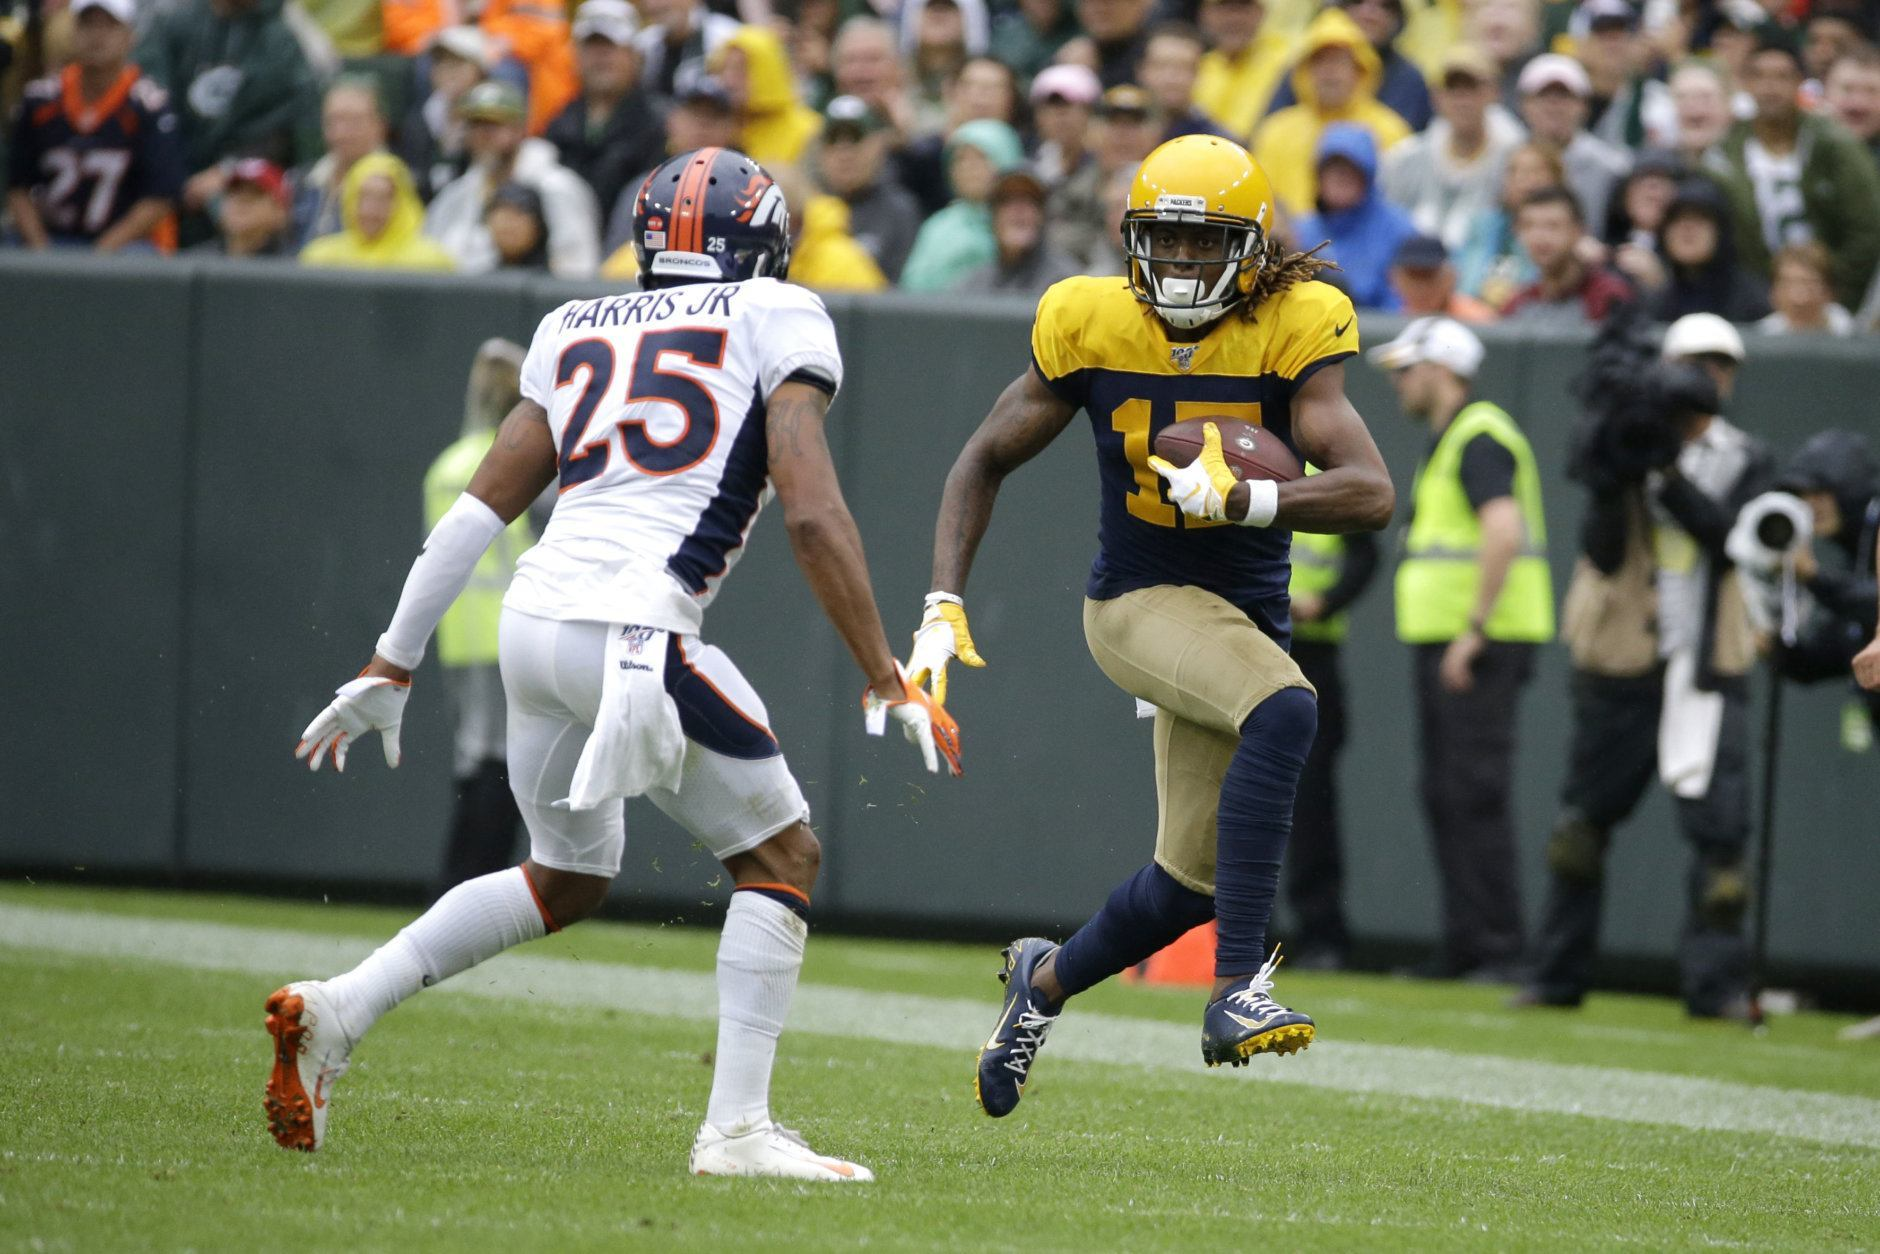 "<p><b><i>Broncos 16</i></b><br /> <b><i>Packers 27</i></b></p> <p>Denver, who hired a head coach because of his defensive prowess, has a defense without a take-away or a sack through three games this season. If only they had a player on their team capable of generating both …</p> <blockquote class=""twitter-tweet""> <p dir=""ltr"" lang=""en"">Shaquil Barrett in five seasons with the Broncos: 14 sacks.<br /> Shaquil Barrett in not even 3 full games with the Buccaneers: 8 sacks.</p> <p>— Michael David Smith (@MichaelDavSmith) <a href=""https://twitter.com/MichaelDavSmith/status/1175907117355753473?ref_src=twsrc%5Etfw"">September 22, 2019</a></p></blockquote> <p><script async src=""https://platform.twitter.com/widgets.js"" charset=""utf-8""></script></p>"